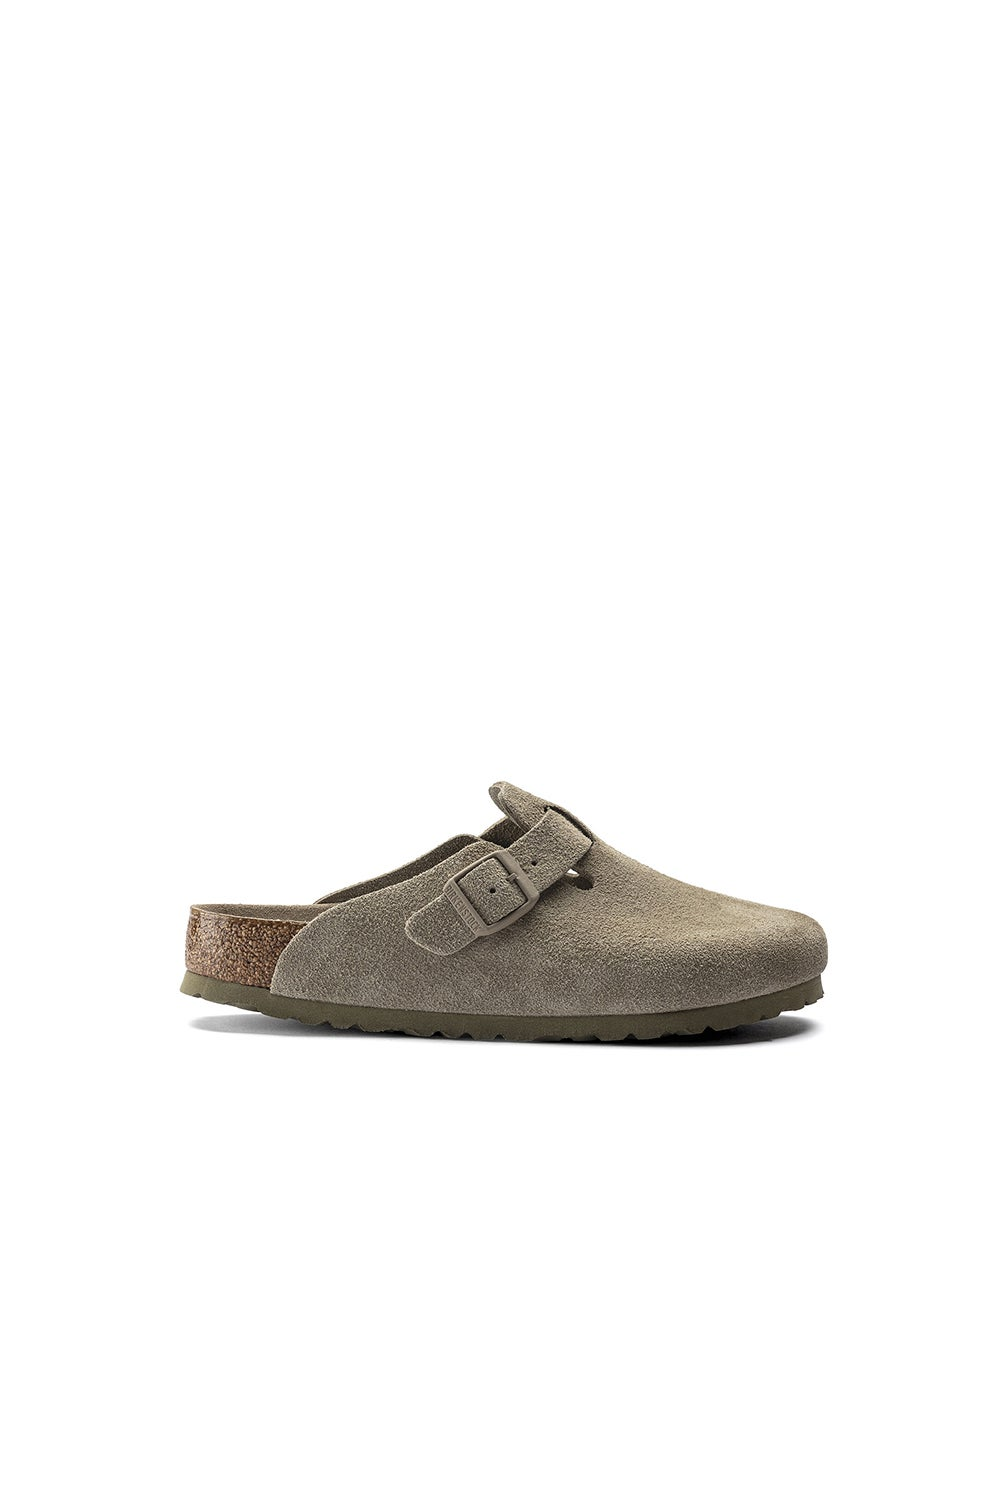 Birkenstock Boston SFB Suede Faded Khaki